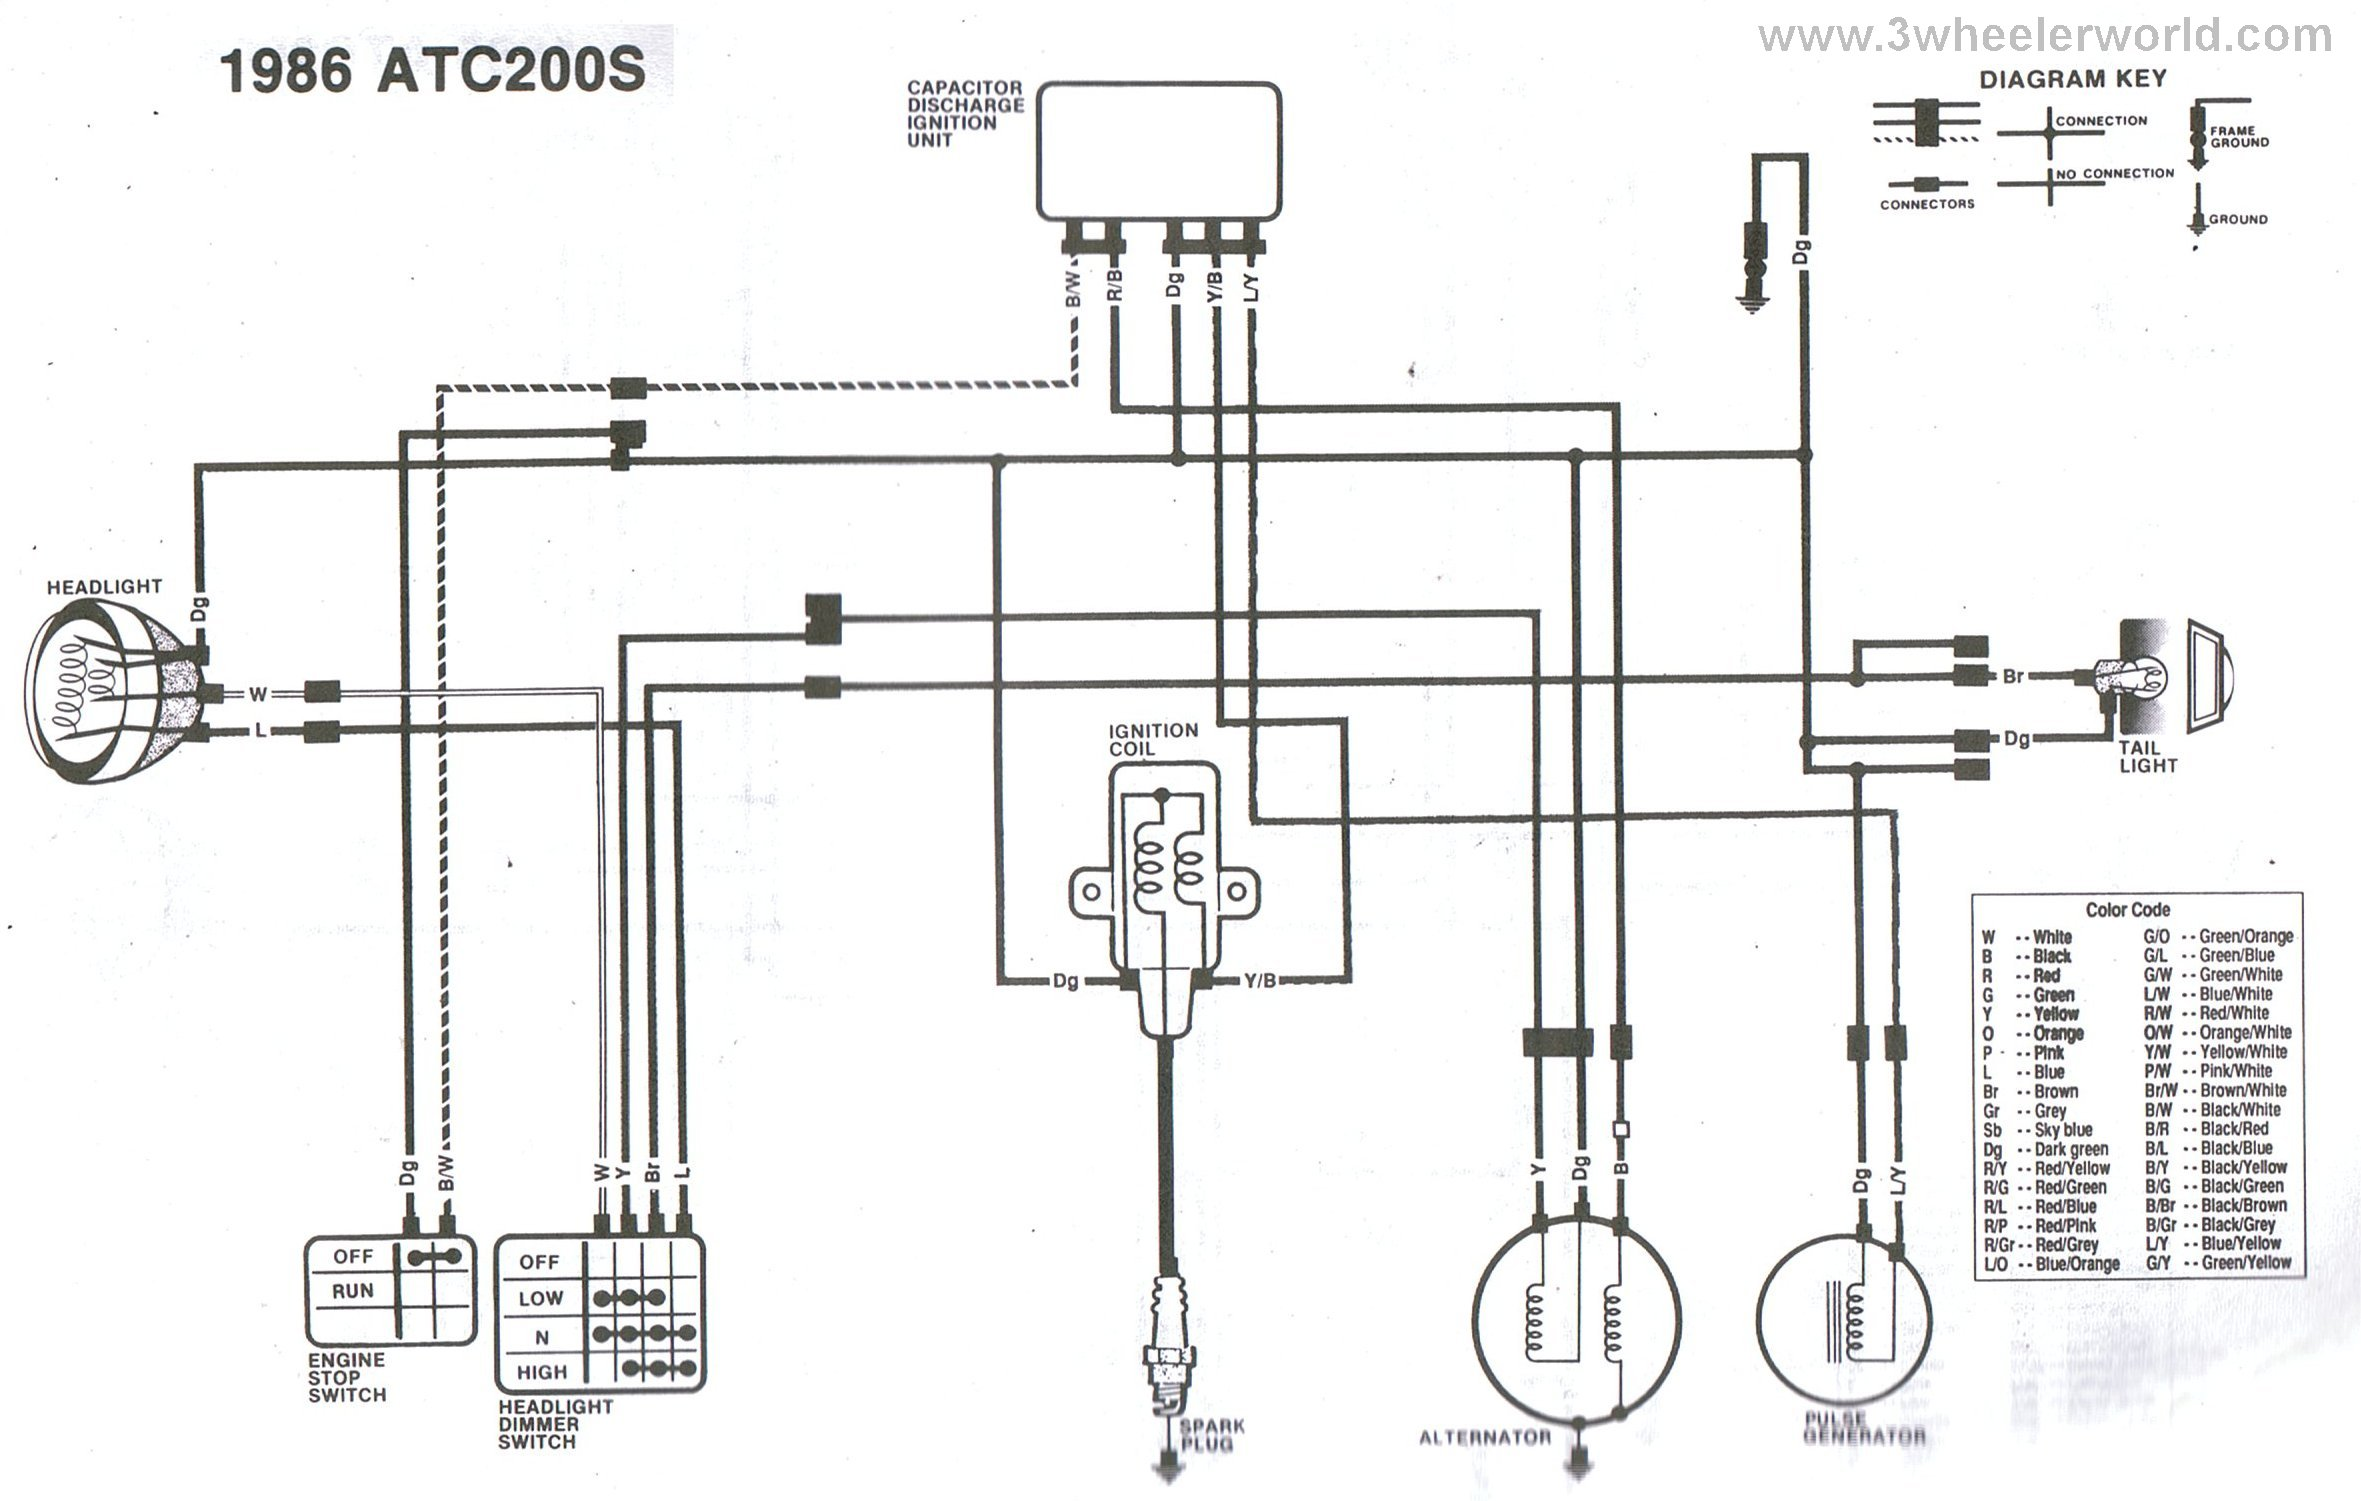 82 Suzuki Gs850g Wiring Diagram Online Wiring Diagram